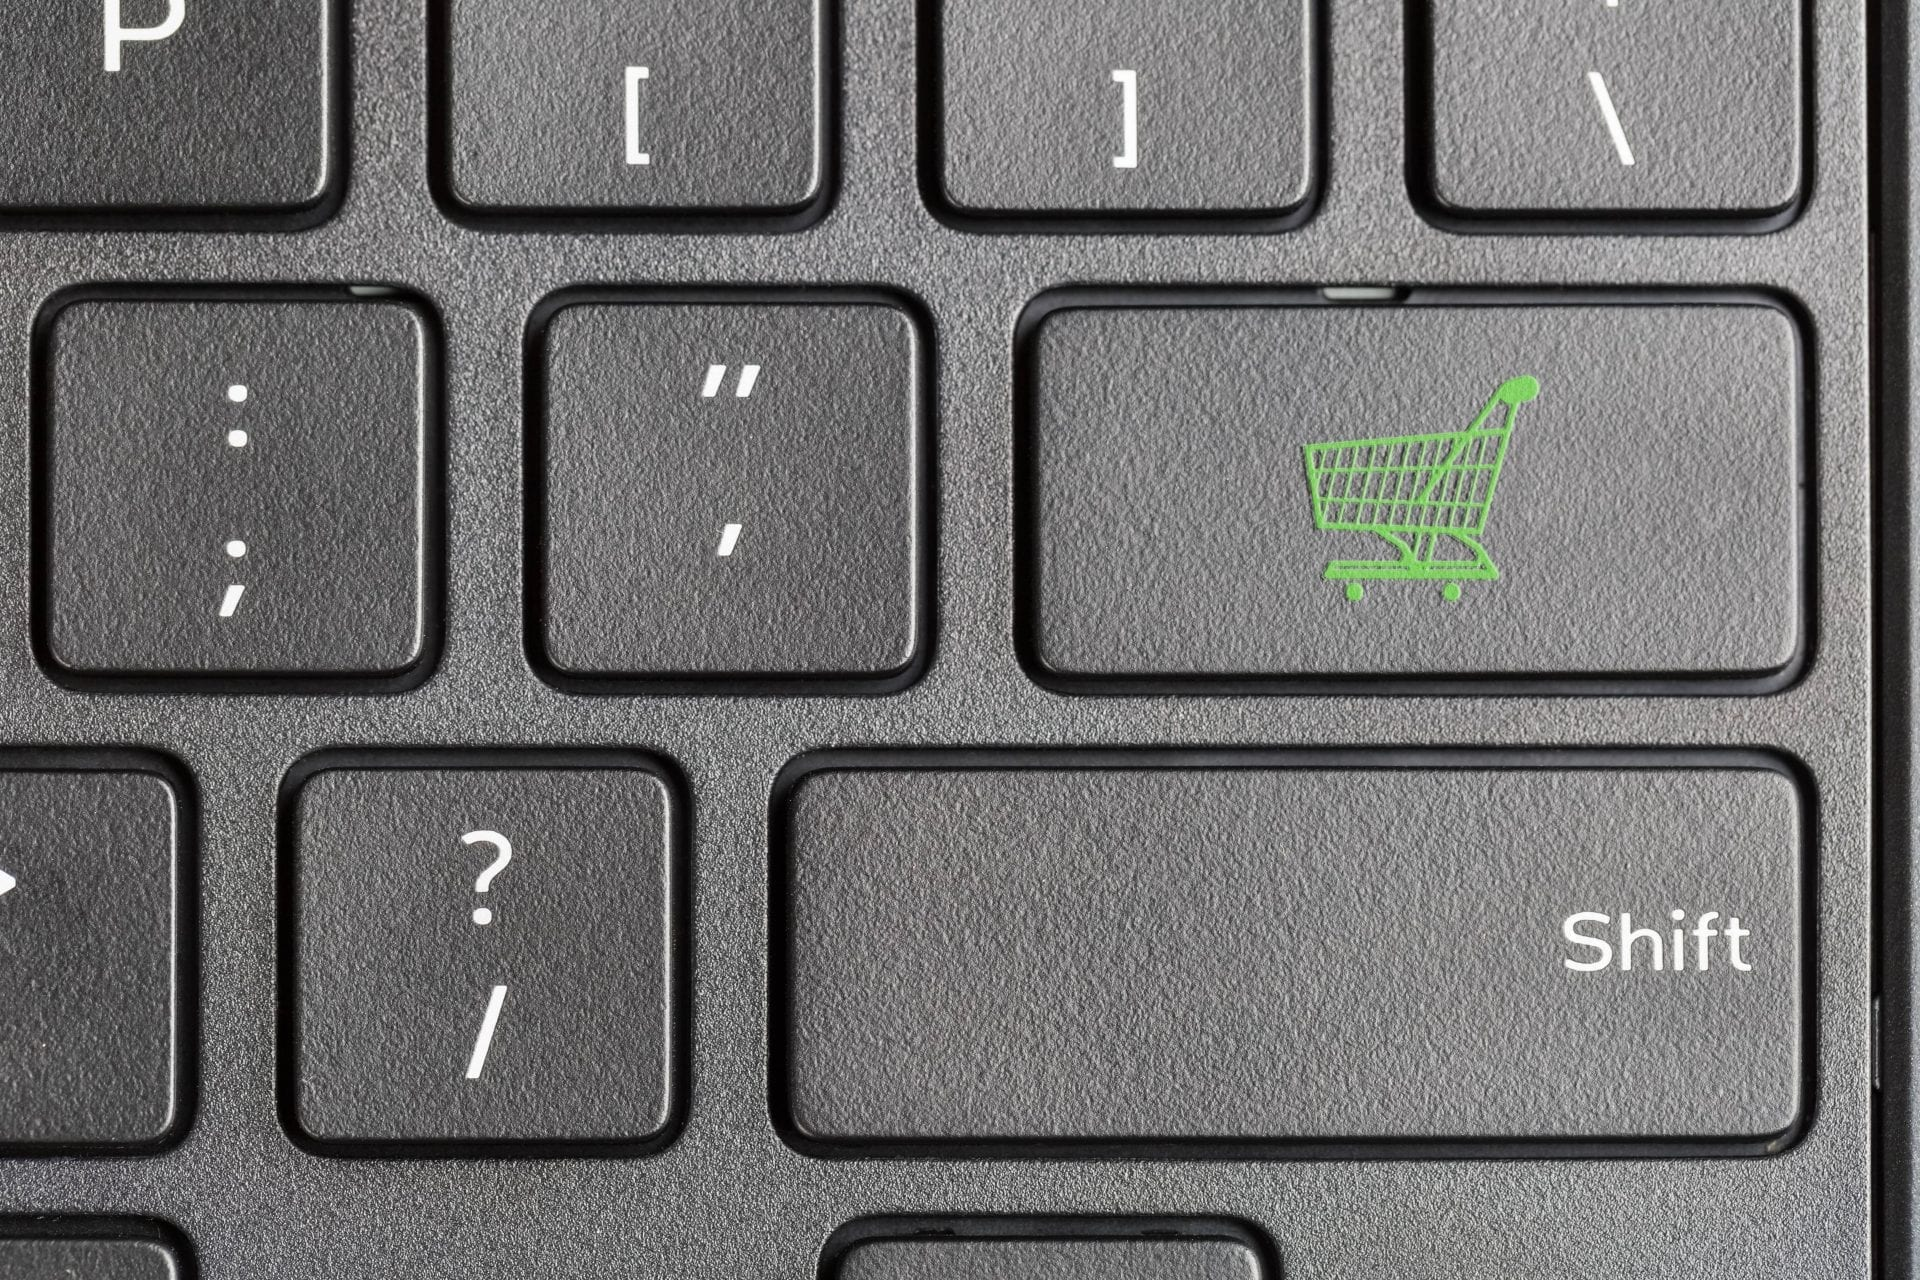 shopping-cart-icon-on-computer-keyboard-PKRKWB6-min